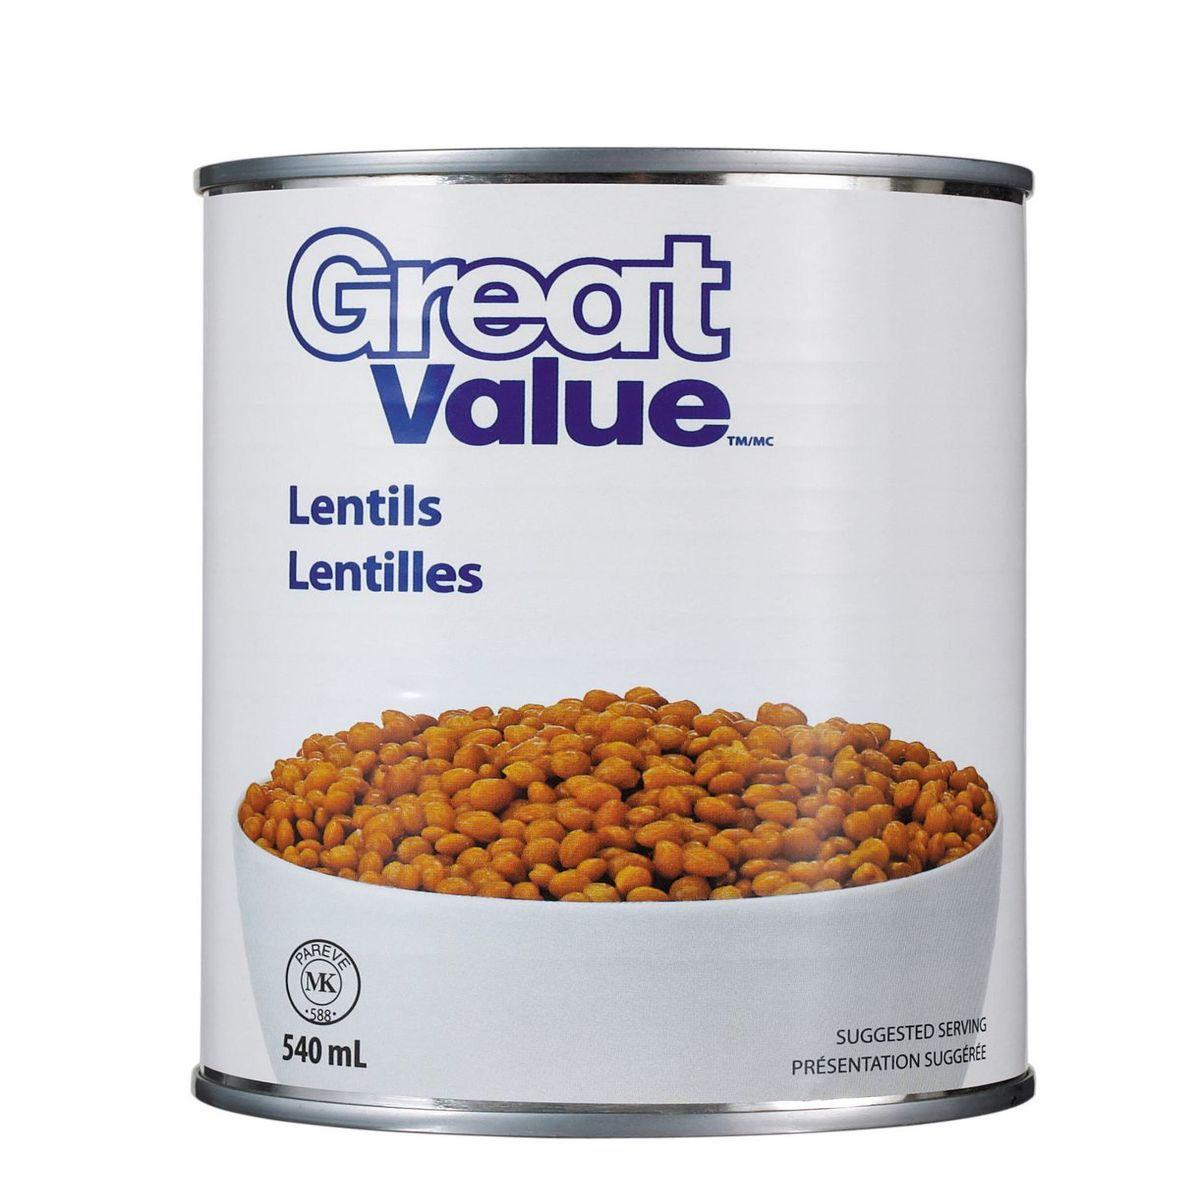 Great Value Lentils 540ml